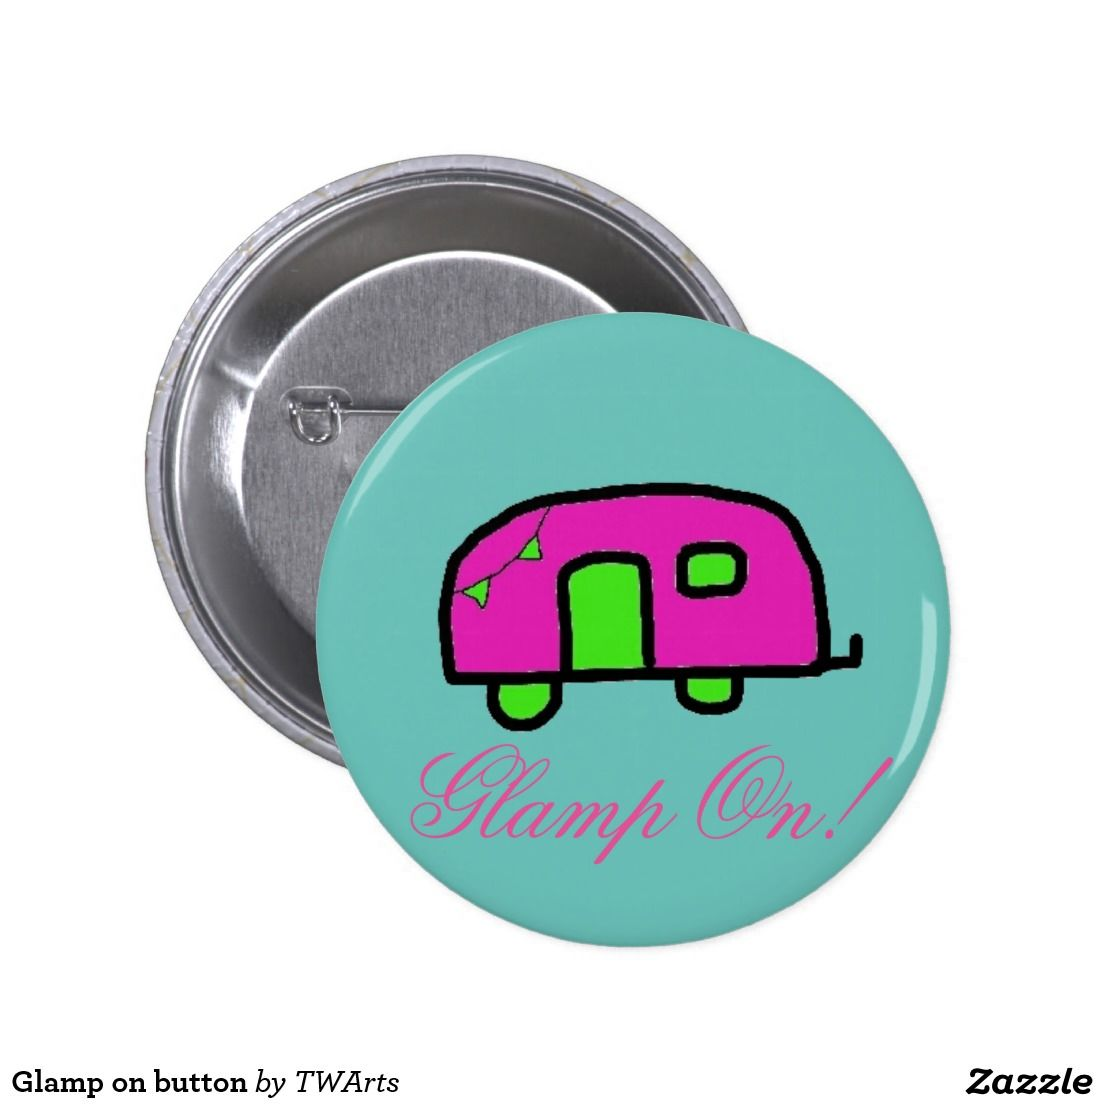 Glamp on button